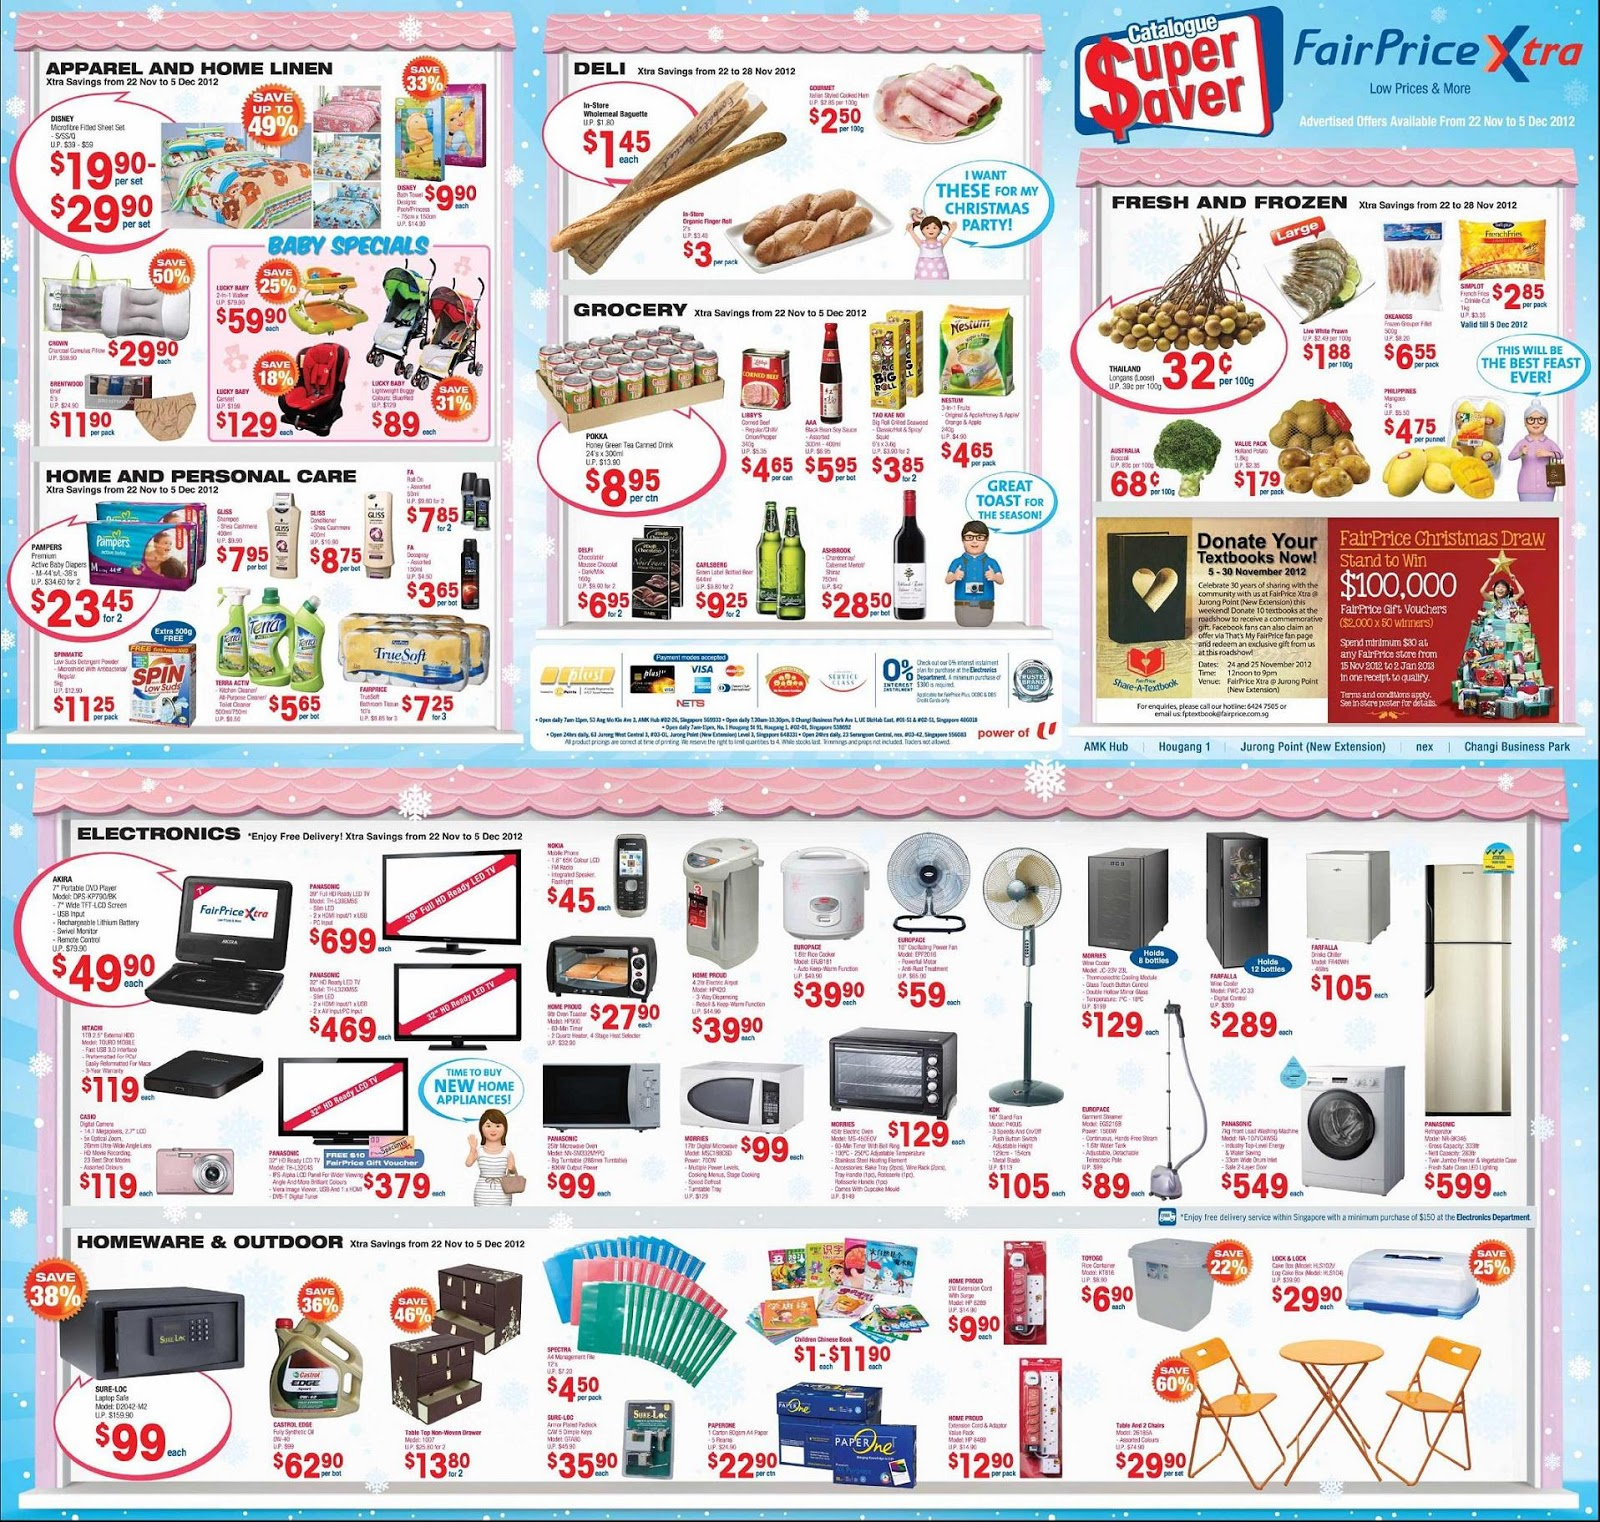 SG Sales Deals Freebies: Fair Price Xtra Promotion 22 Nov to 5 Dec ...